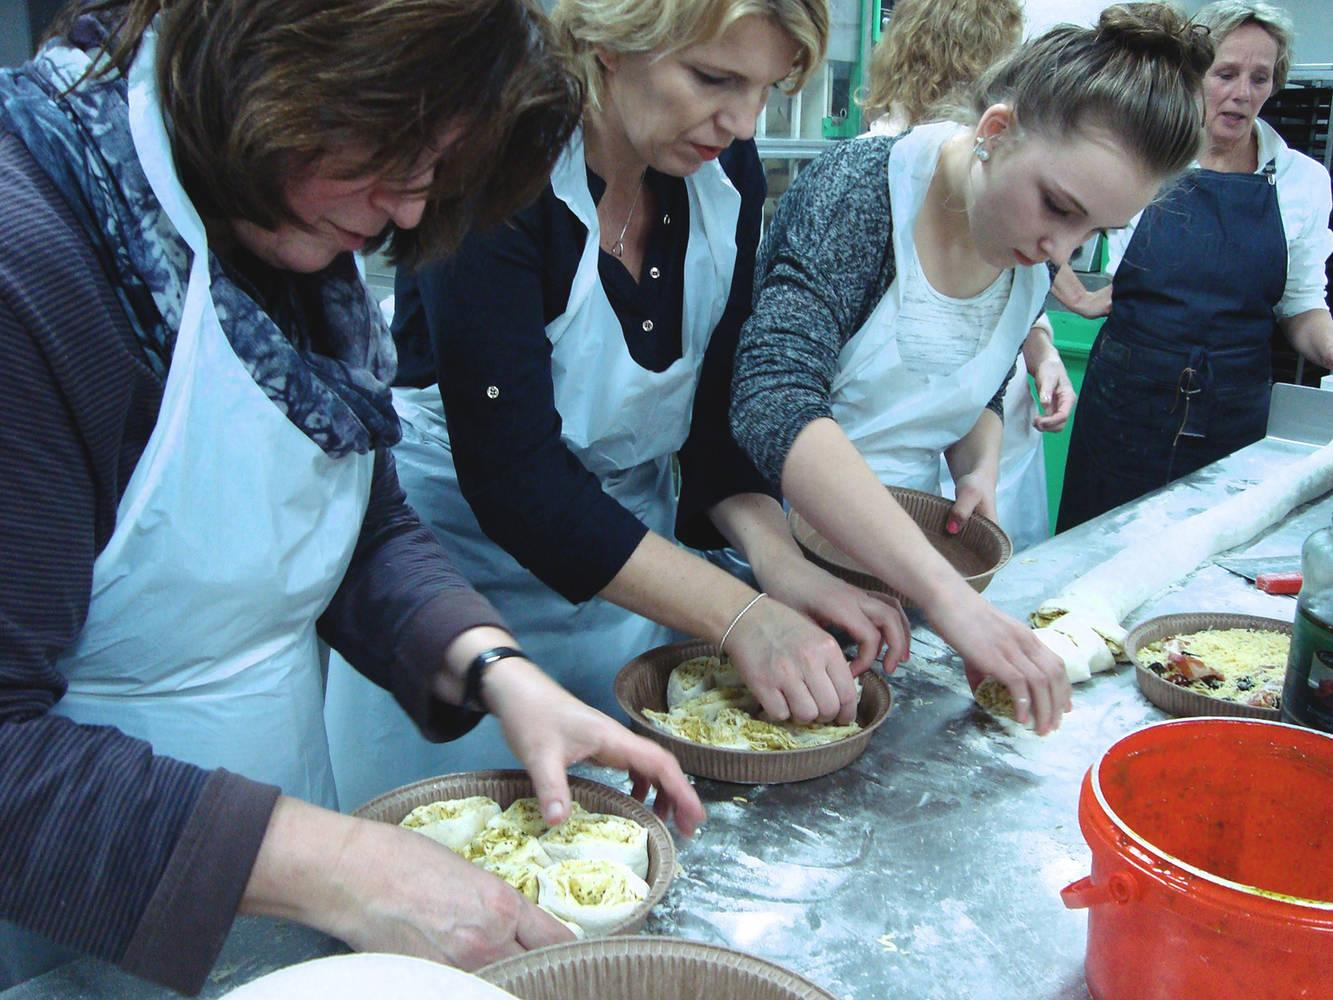 Workshop - Passie voor Italiaans brood